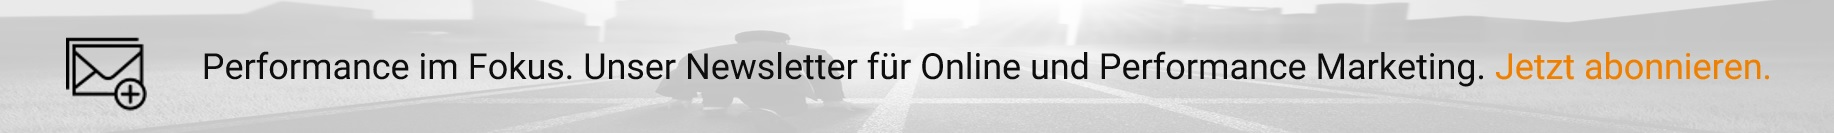 Zum ad agents Newsletter anmelden - Online und Performance Marketing im Fokus